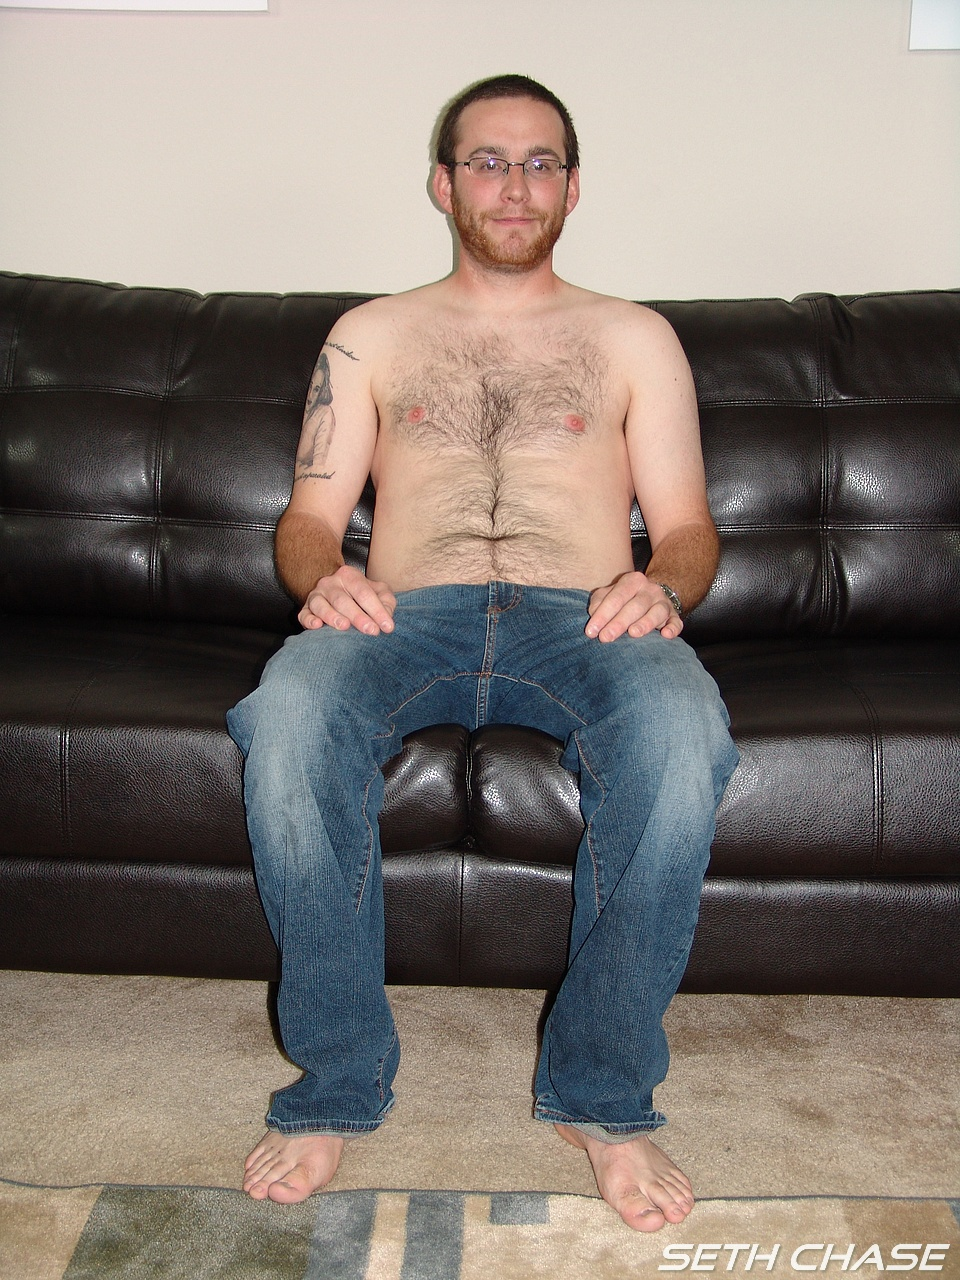 Seth-Chase-Eric-Stowe-Uncut-Cock-Sucking-44 Hairy Straight Amateur Nerd Gets His Big Uncut Cock Sucked